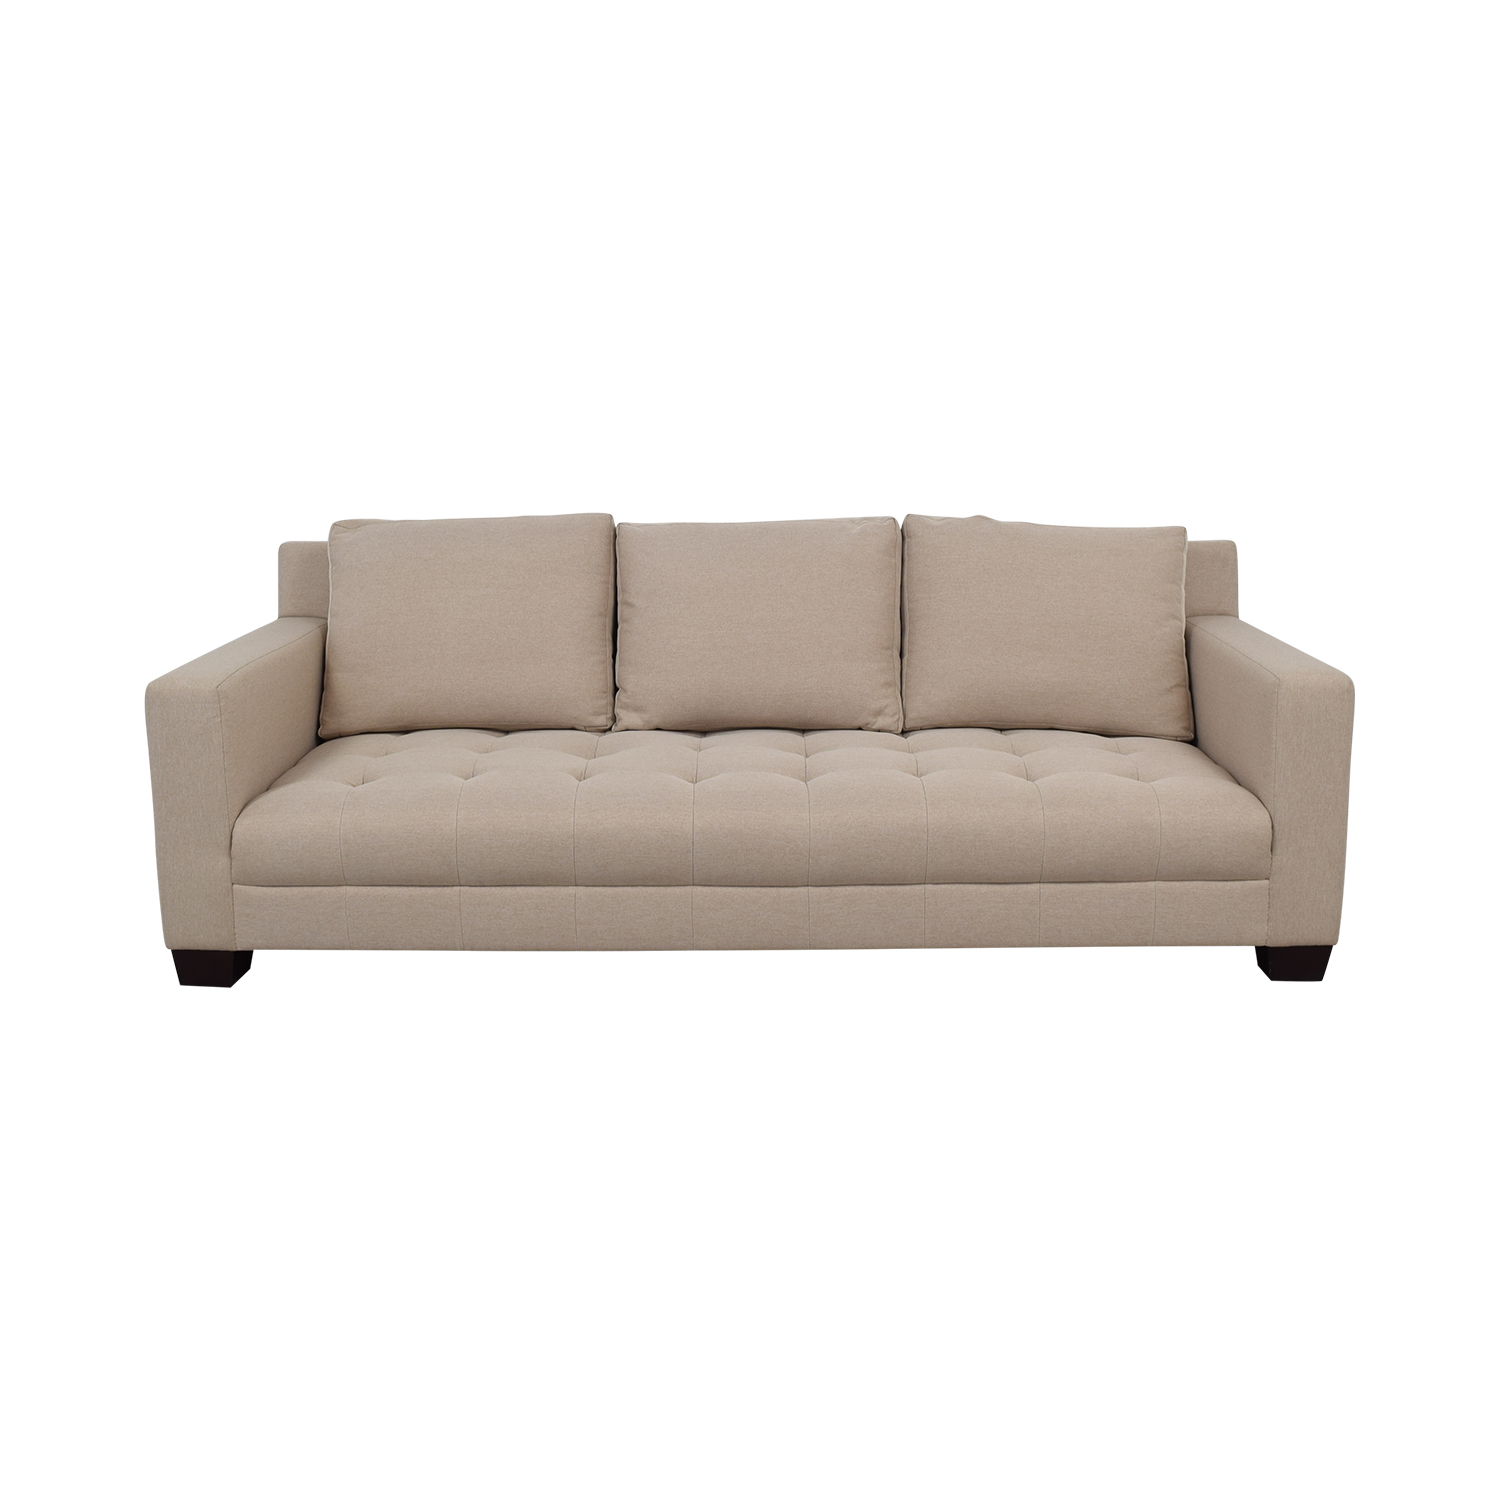 Furniture Masters Furniture Masters Gray Tufted Single Cushion Sofa discount